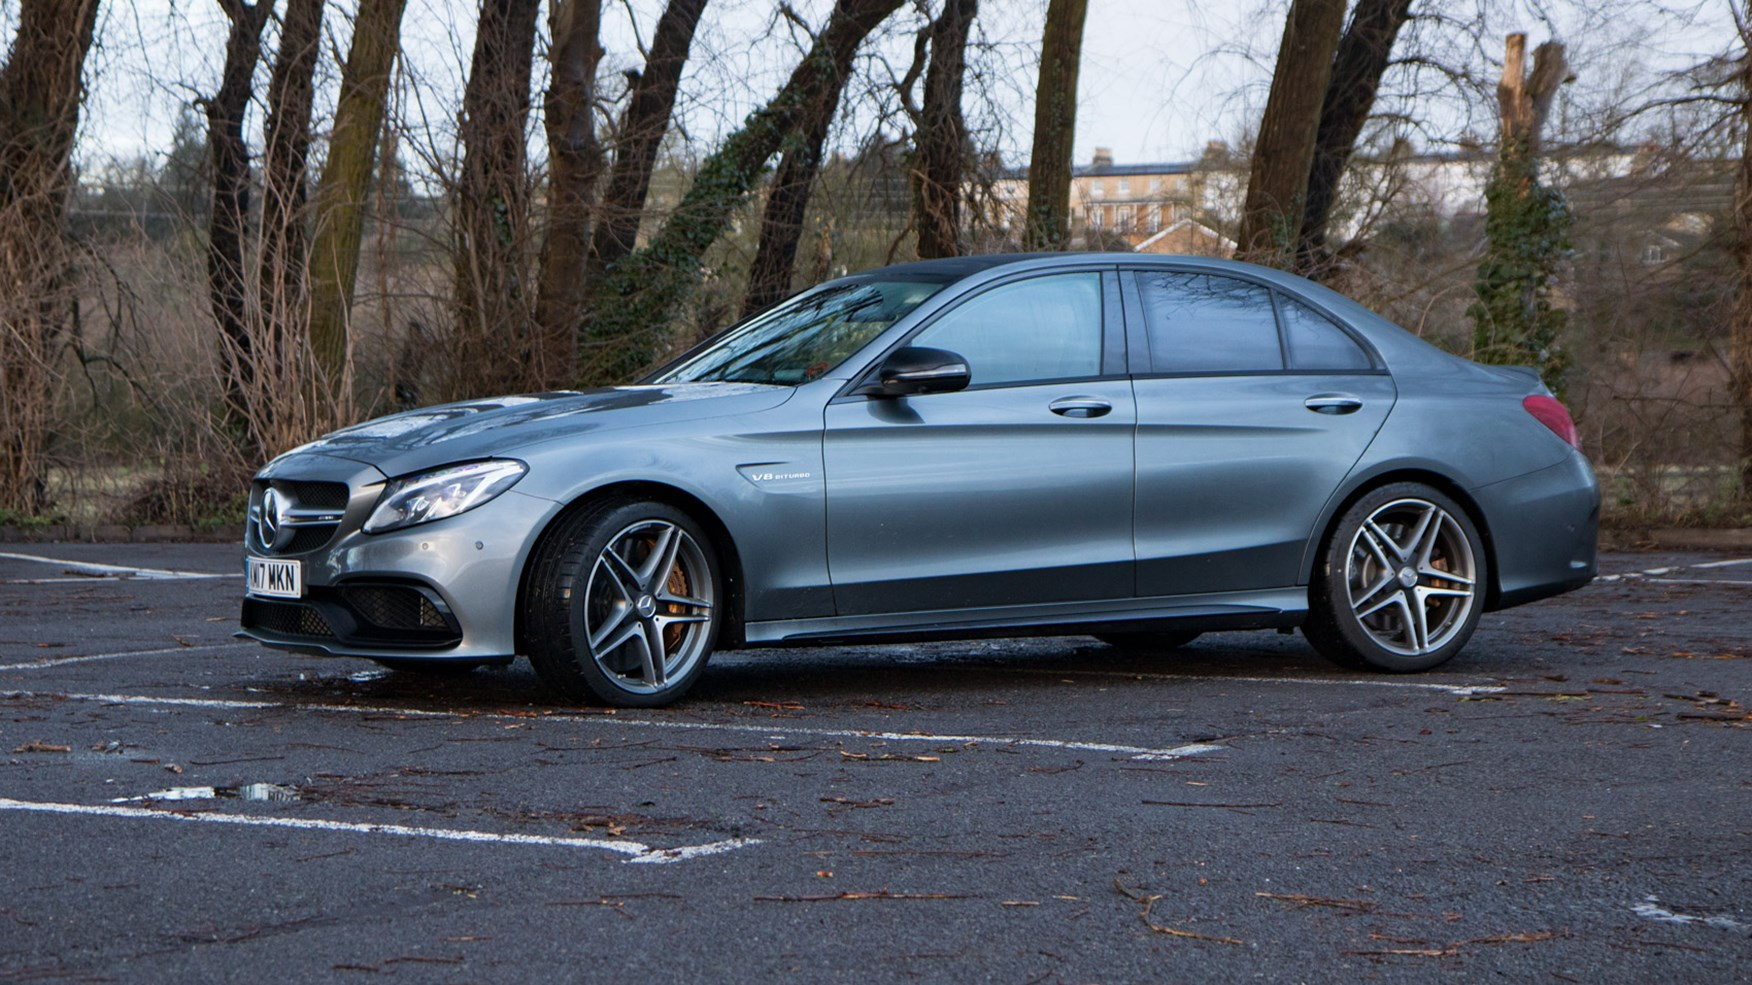 Mercedes Benz Lease Deals 0 Down >> Mercedes C63 S saloon review: Executive looks with supercar performance   CAR Magazine